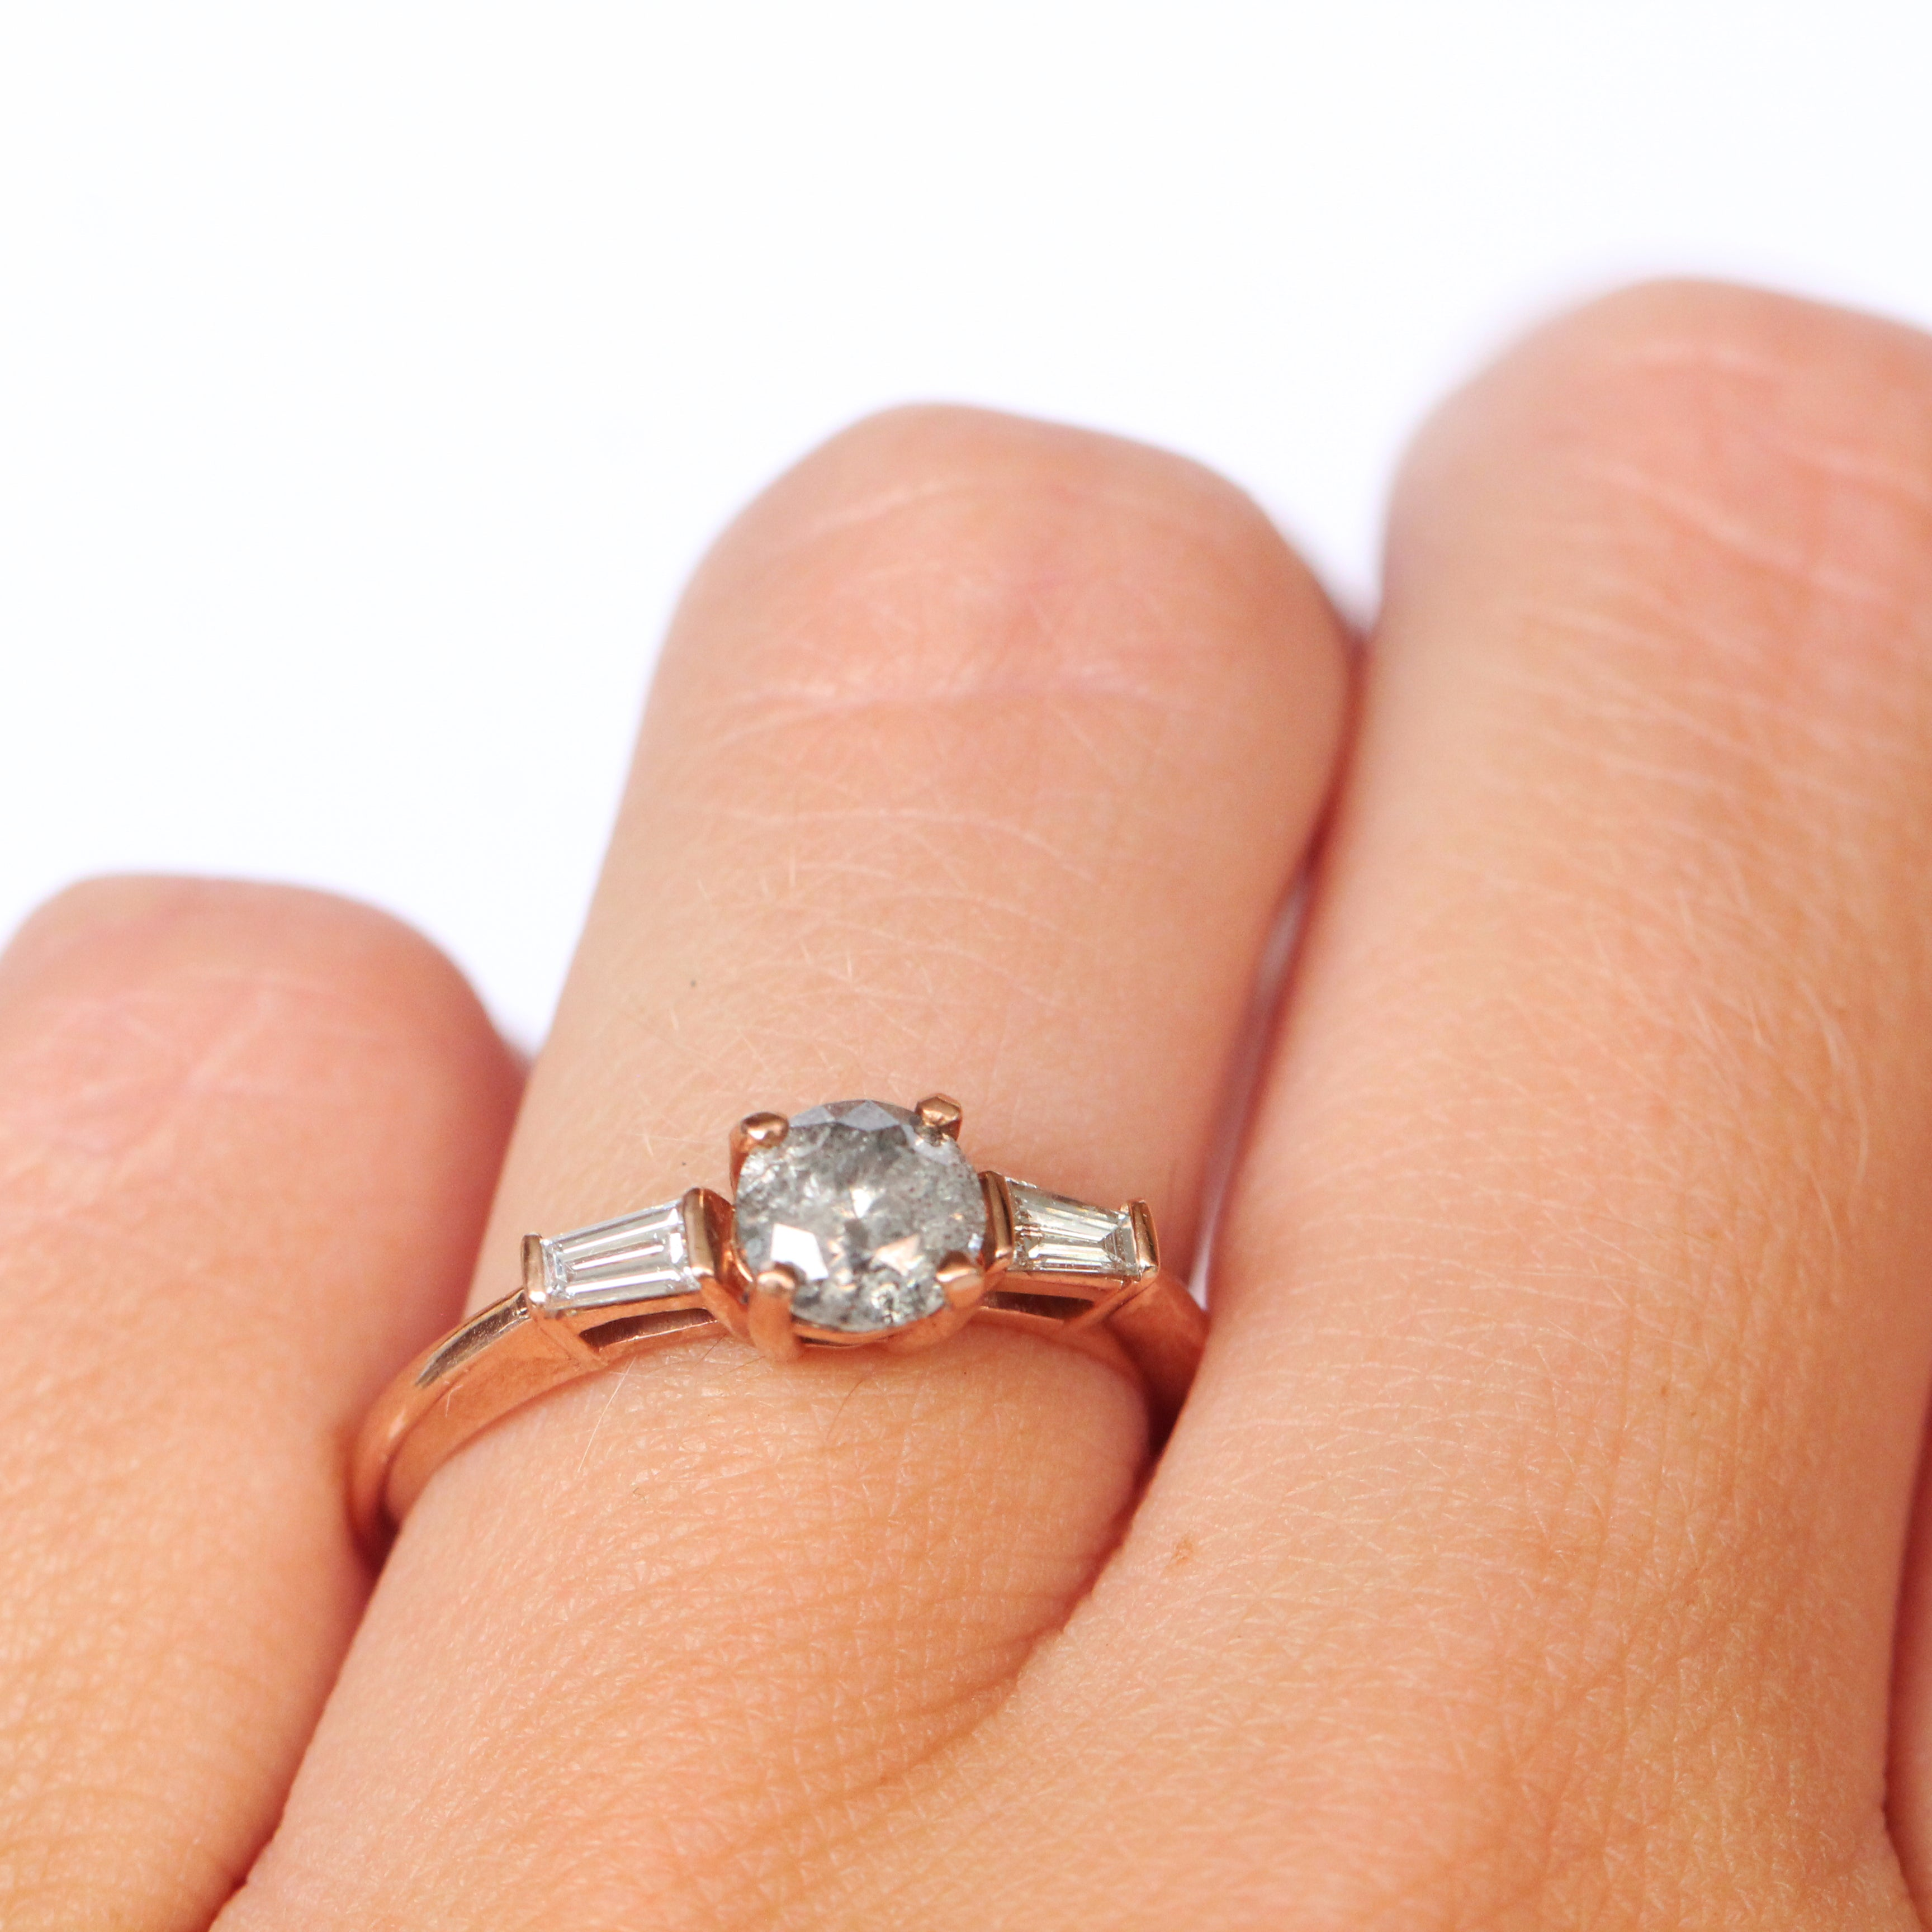 Leilani Ring with a Celestial Diamond and Accent Diamonds in 10k Rose Gold - Ready to Size and Ship